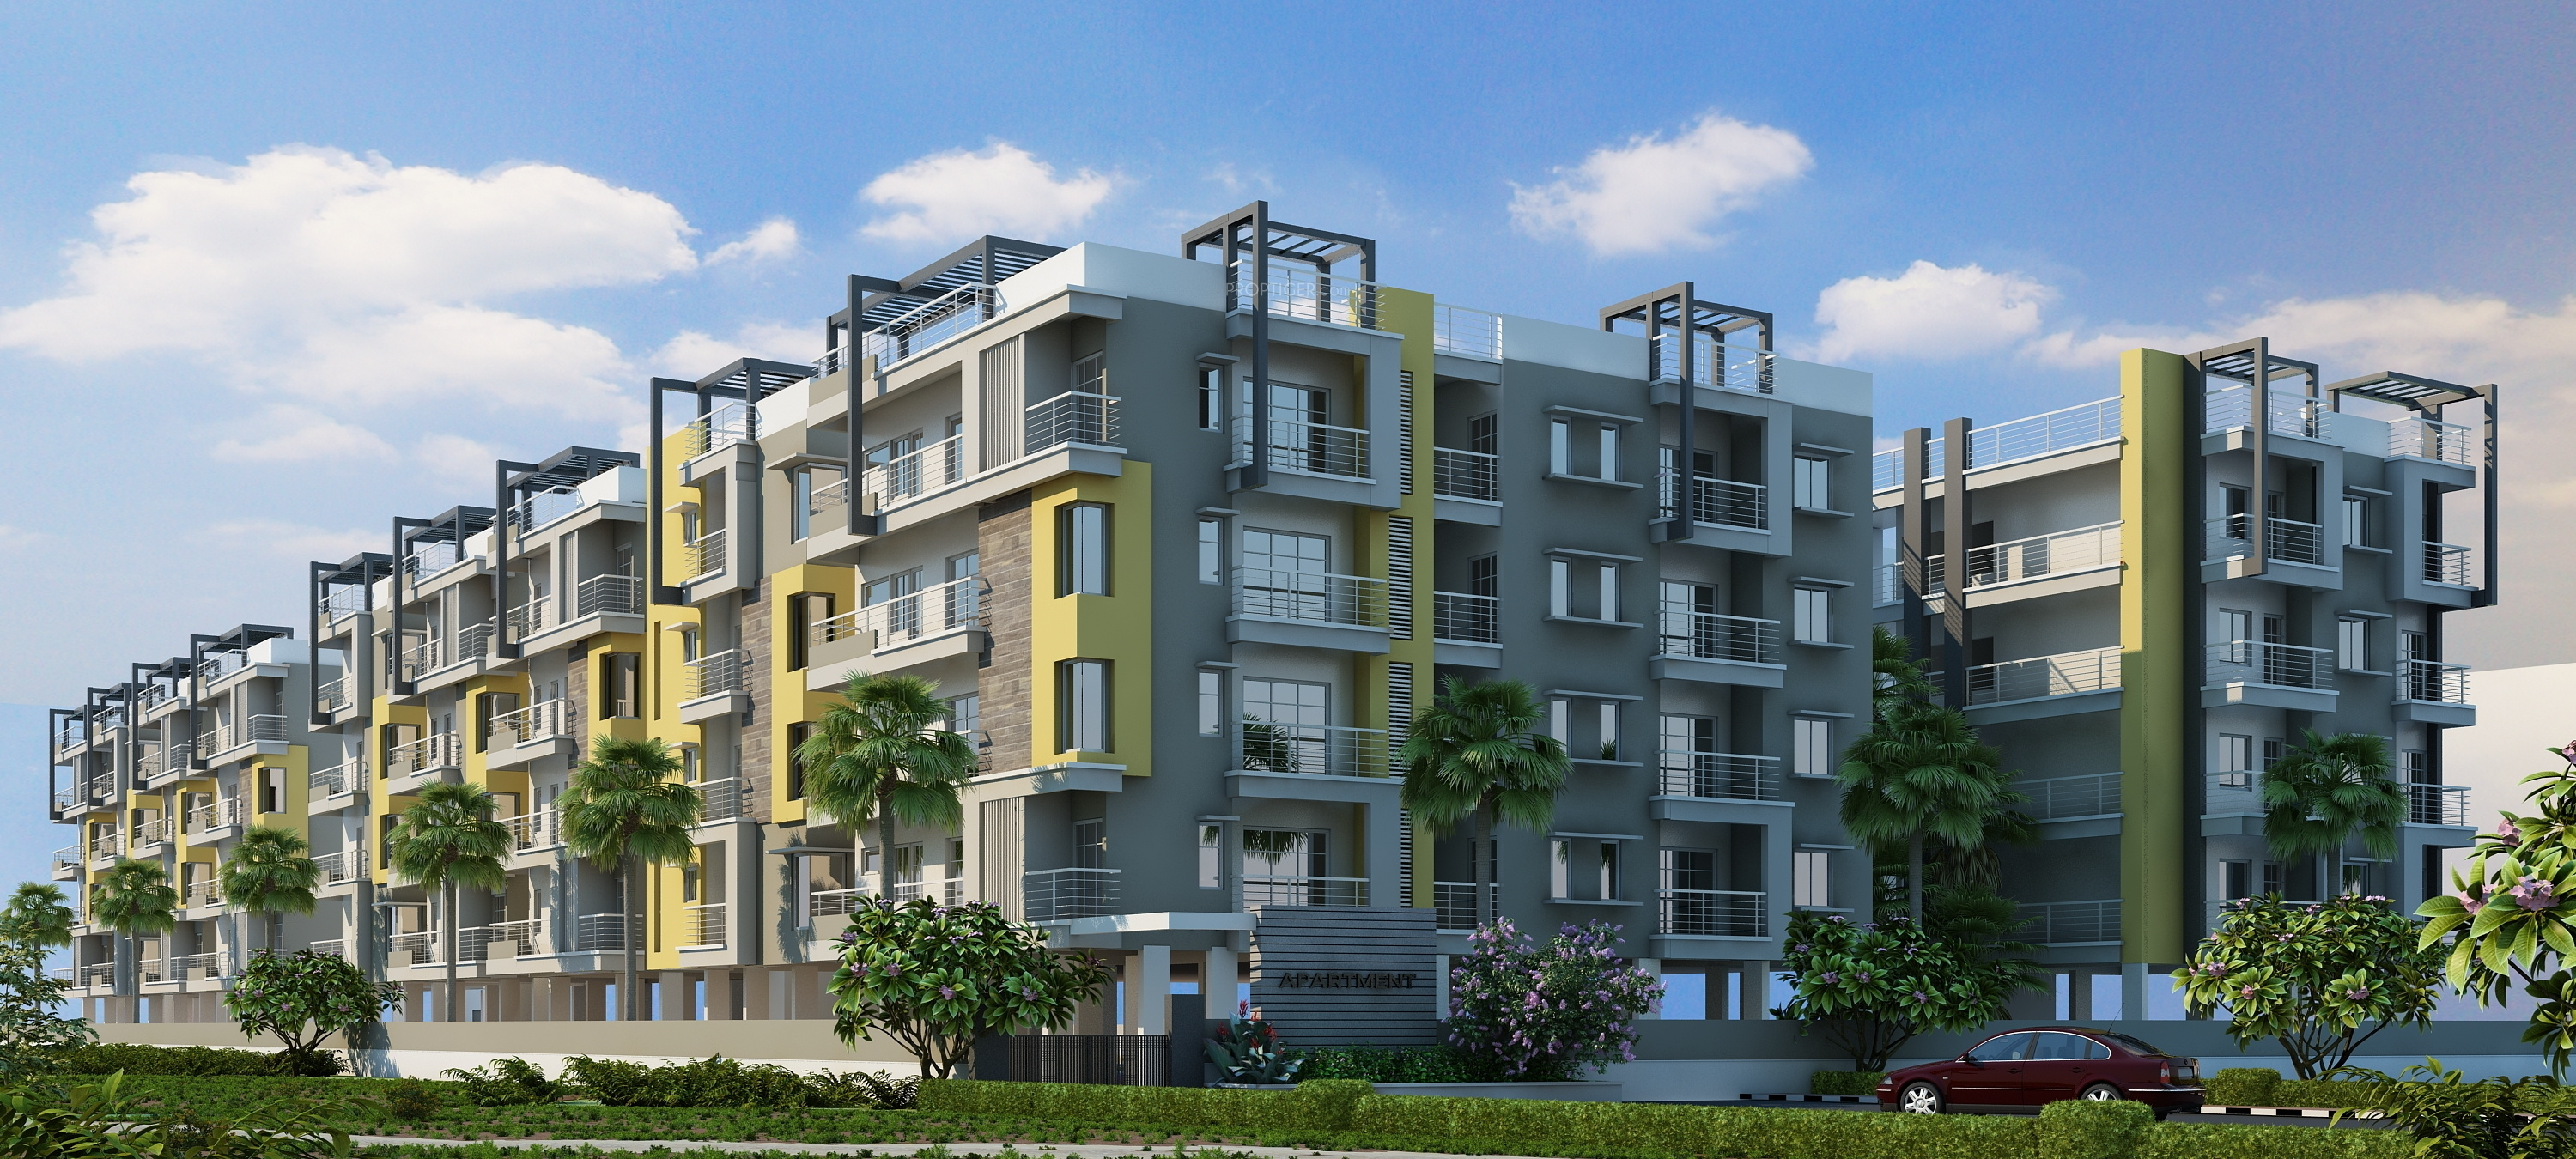 1360 Sq Ft 3 Bhk 2t Apartment For Sale In Dwarakamai Olive Apartments Itpl Bangalore